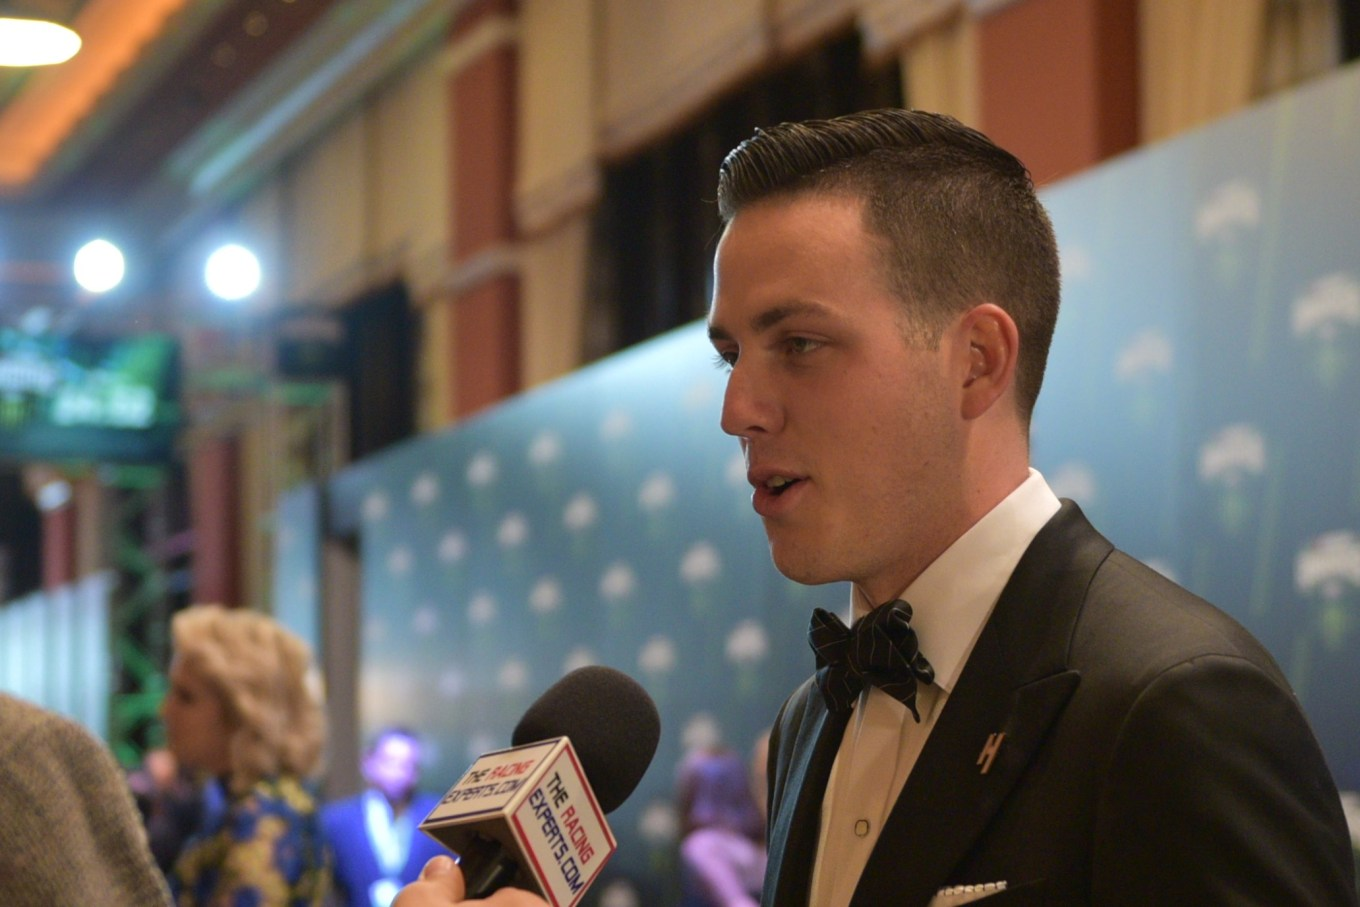 Alex Bowman NASCAR Awards Banquet 2018